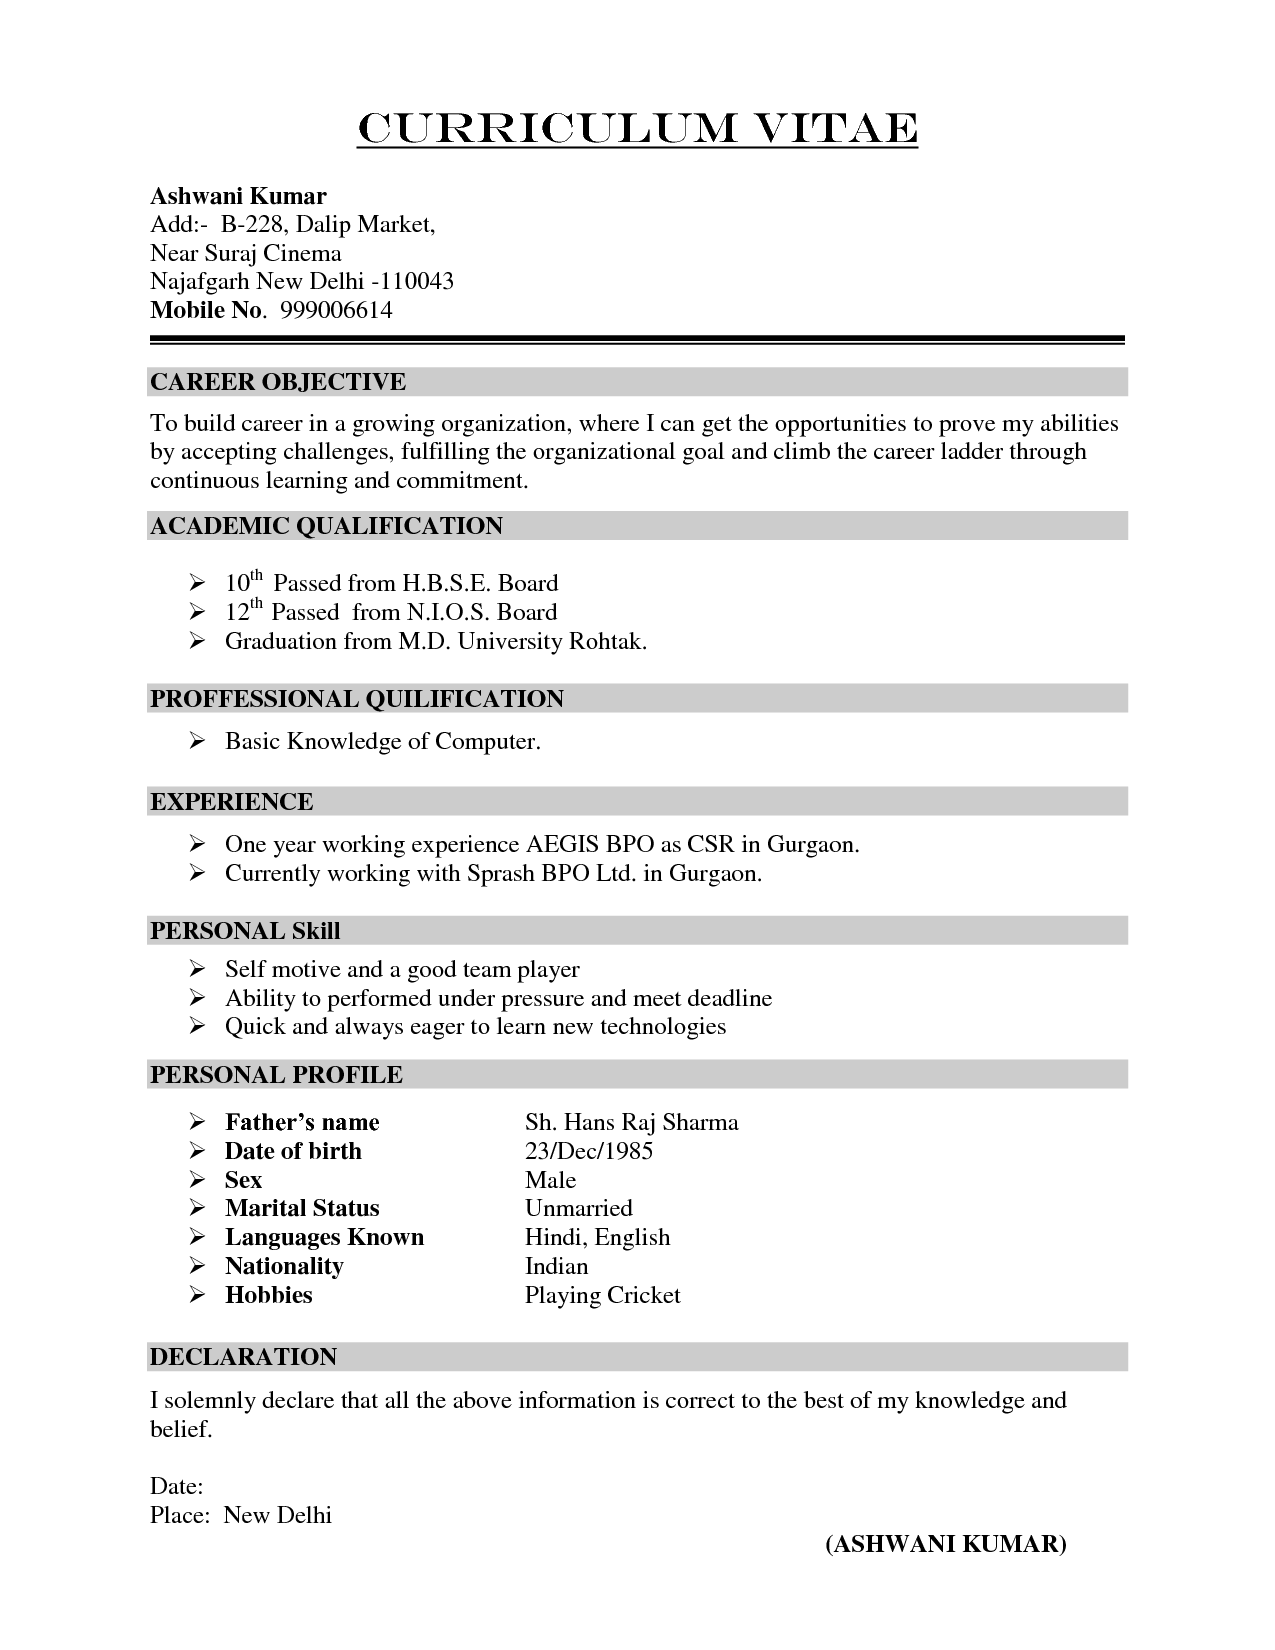 resume template curriculum vitae english example intended for cv example continued gif music major resume example